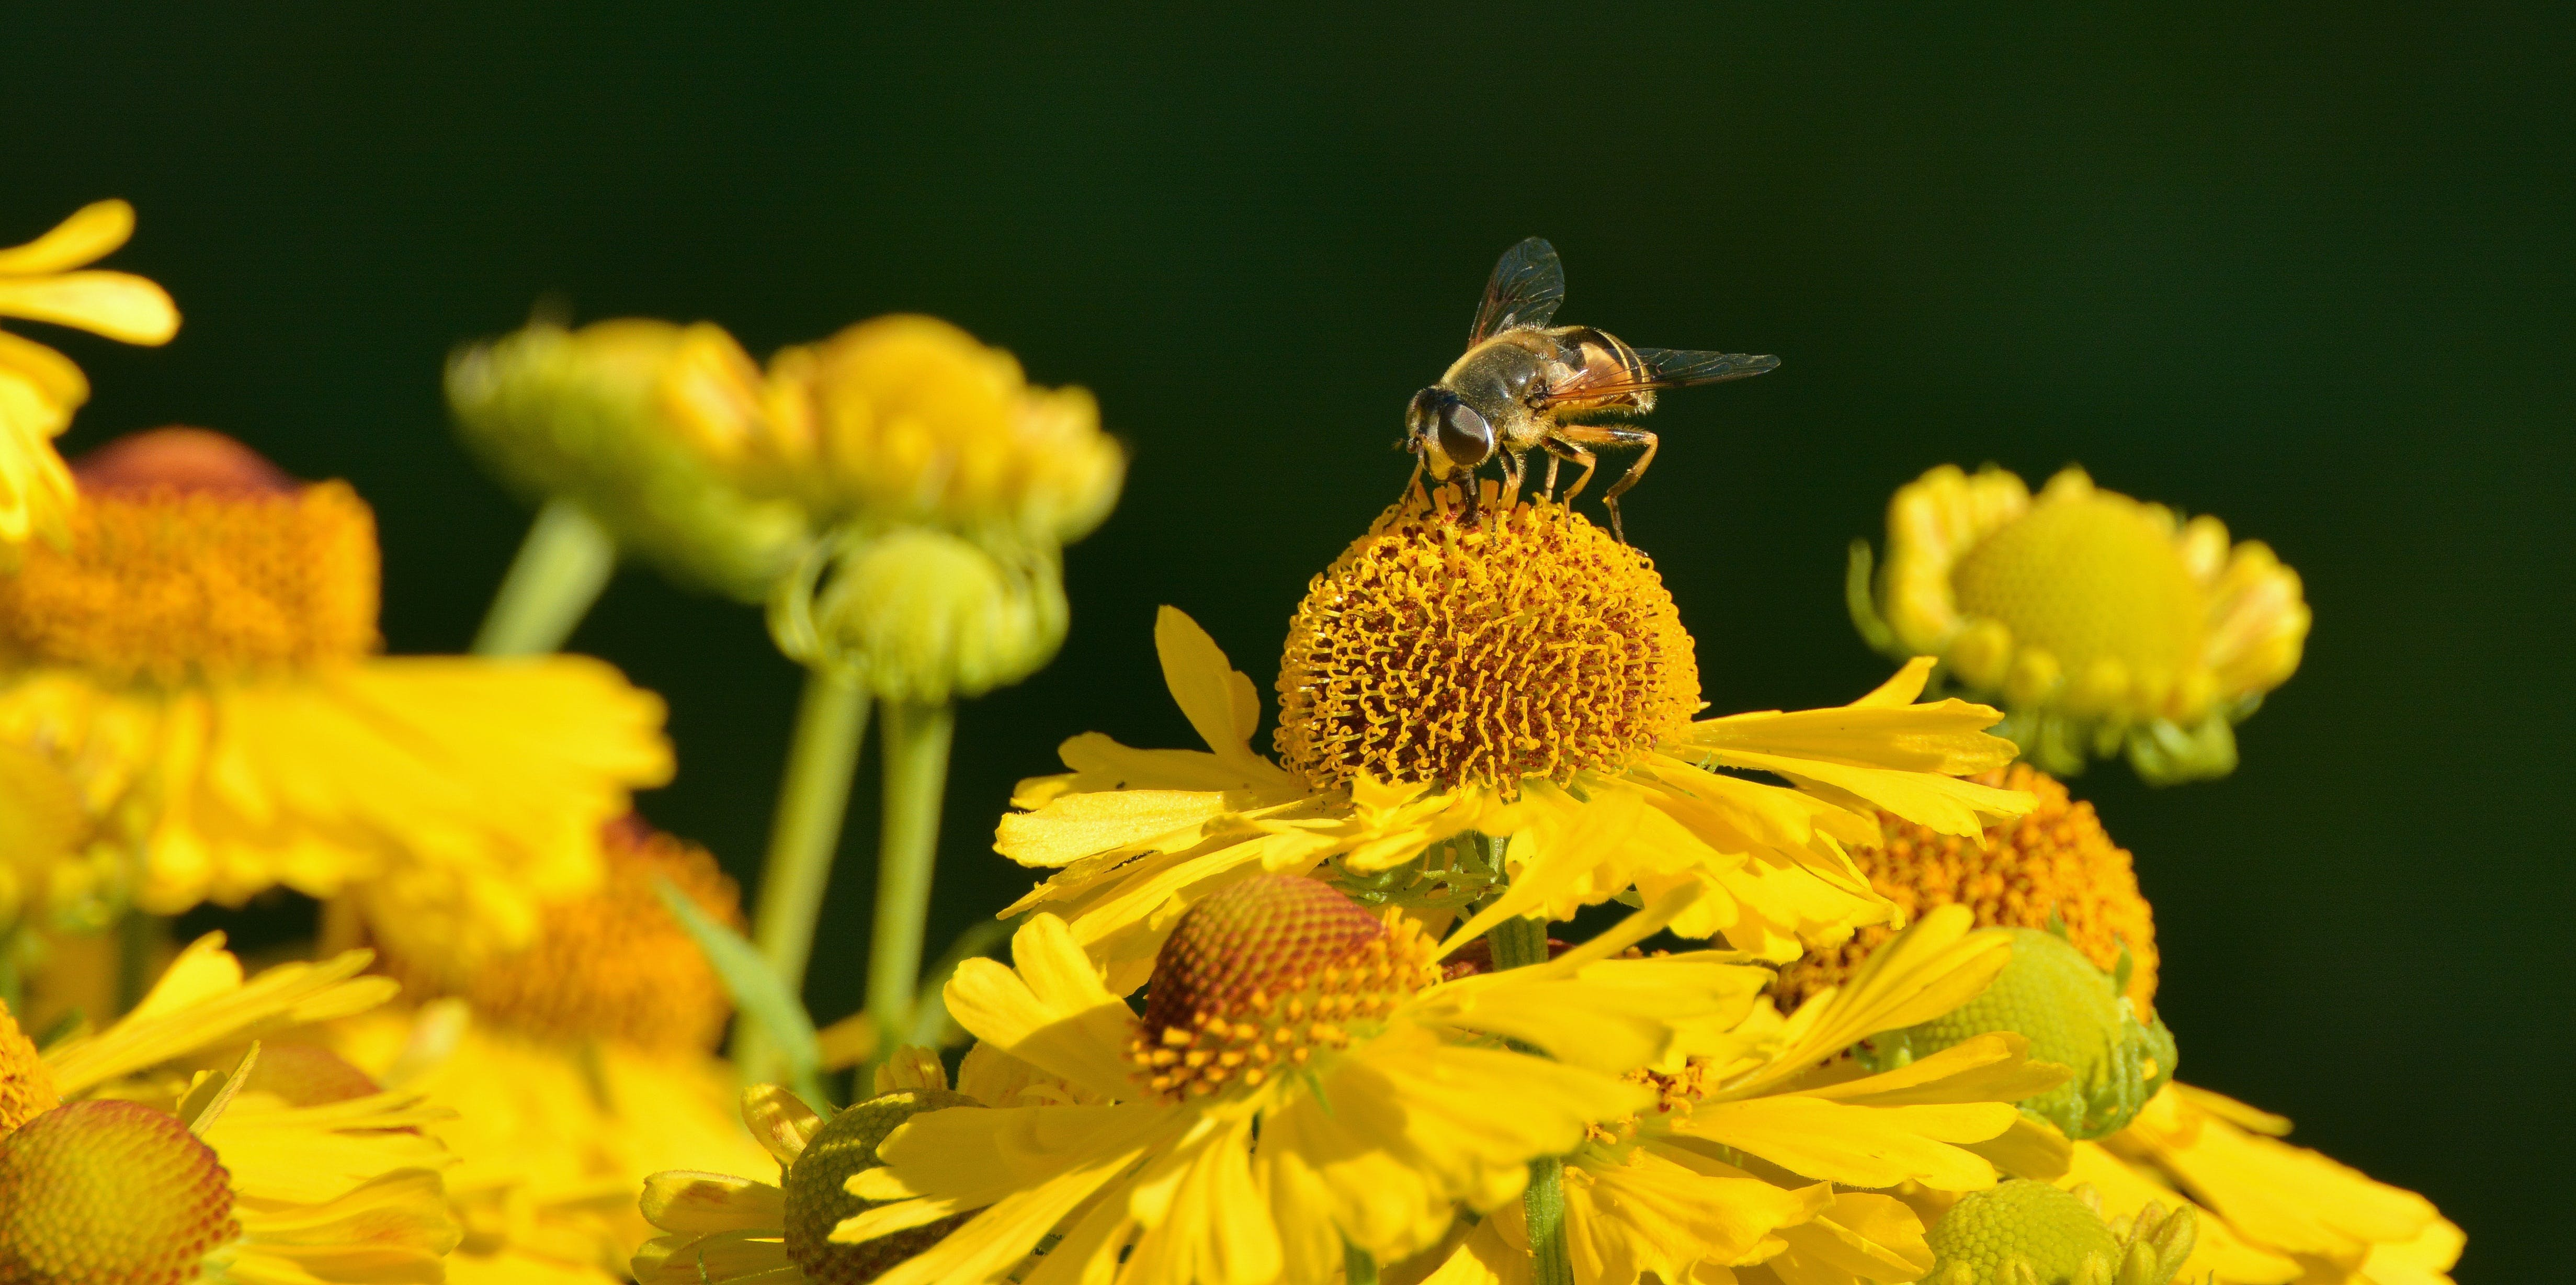 Yellow Honeybee on Yellow Petal Flower